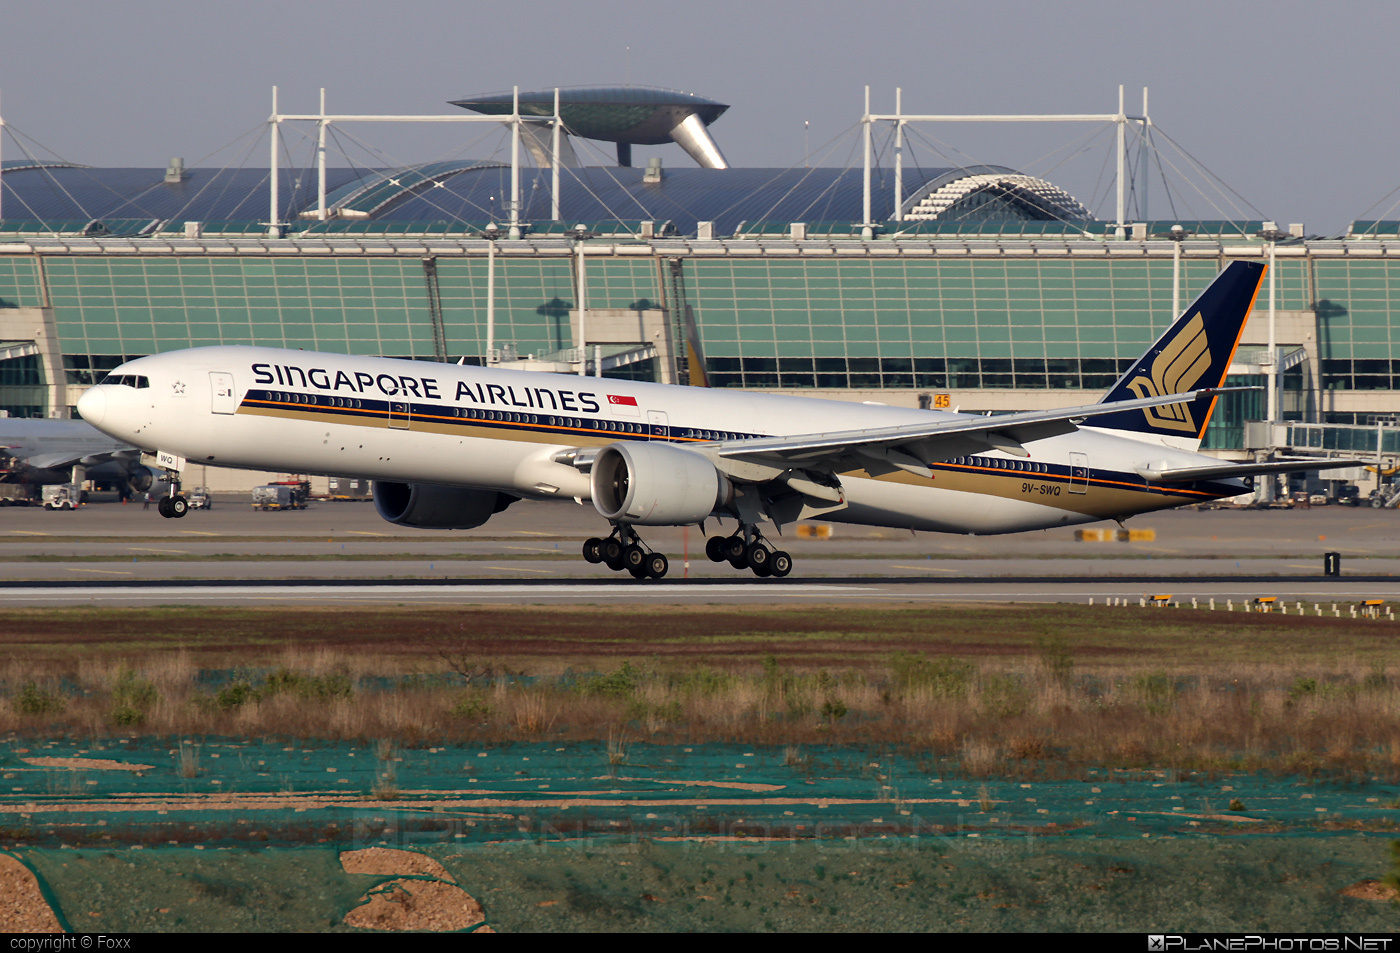 Boeing 777-300ER - 9V-SWQ operated by Singapore Airlines #b777 #b777er #boeing #boeing777 #singaporeairlines #tripleseven